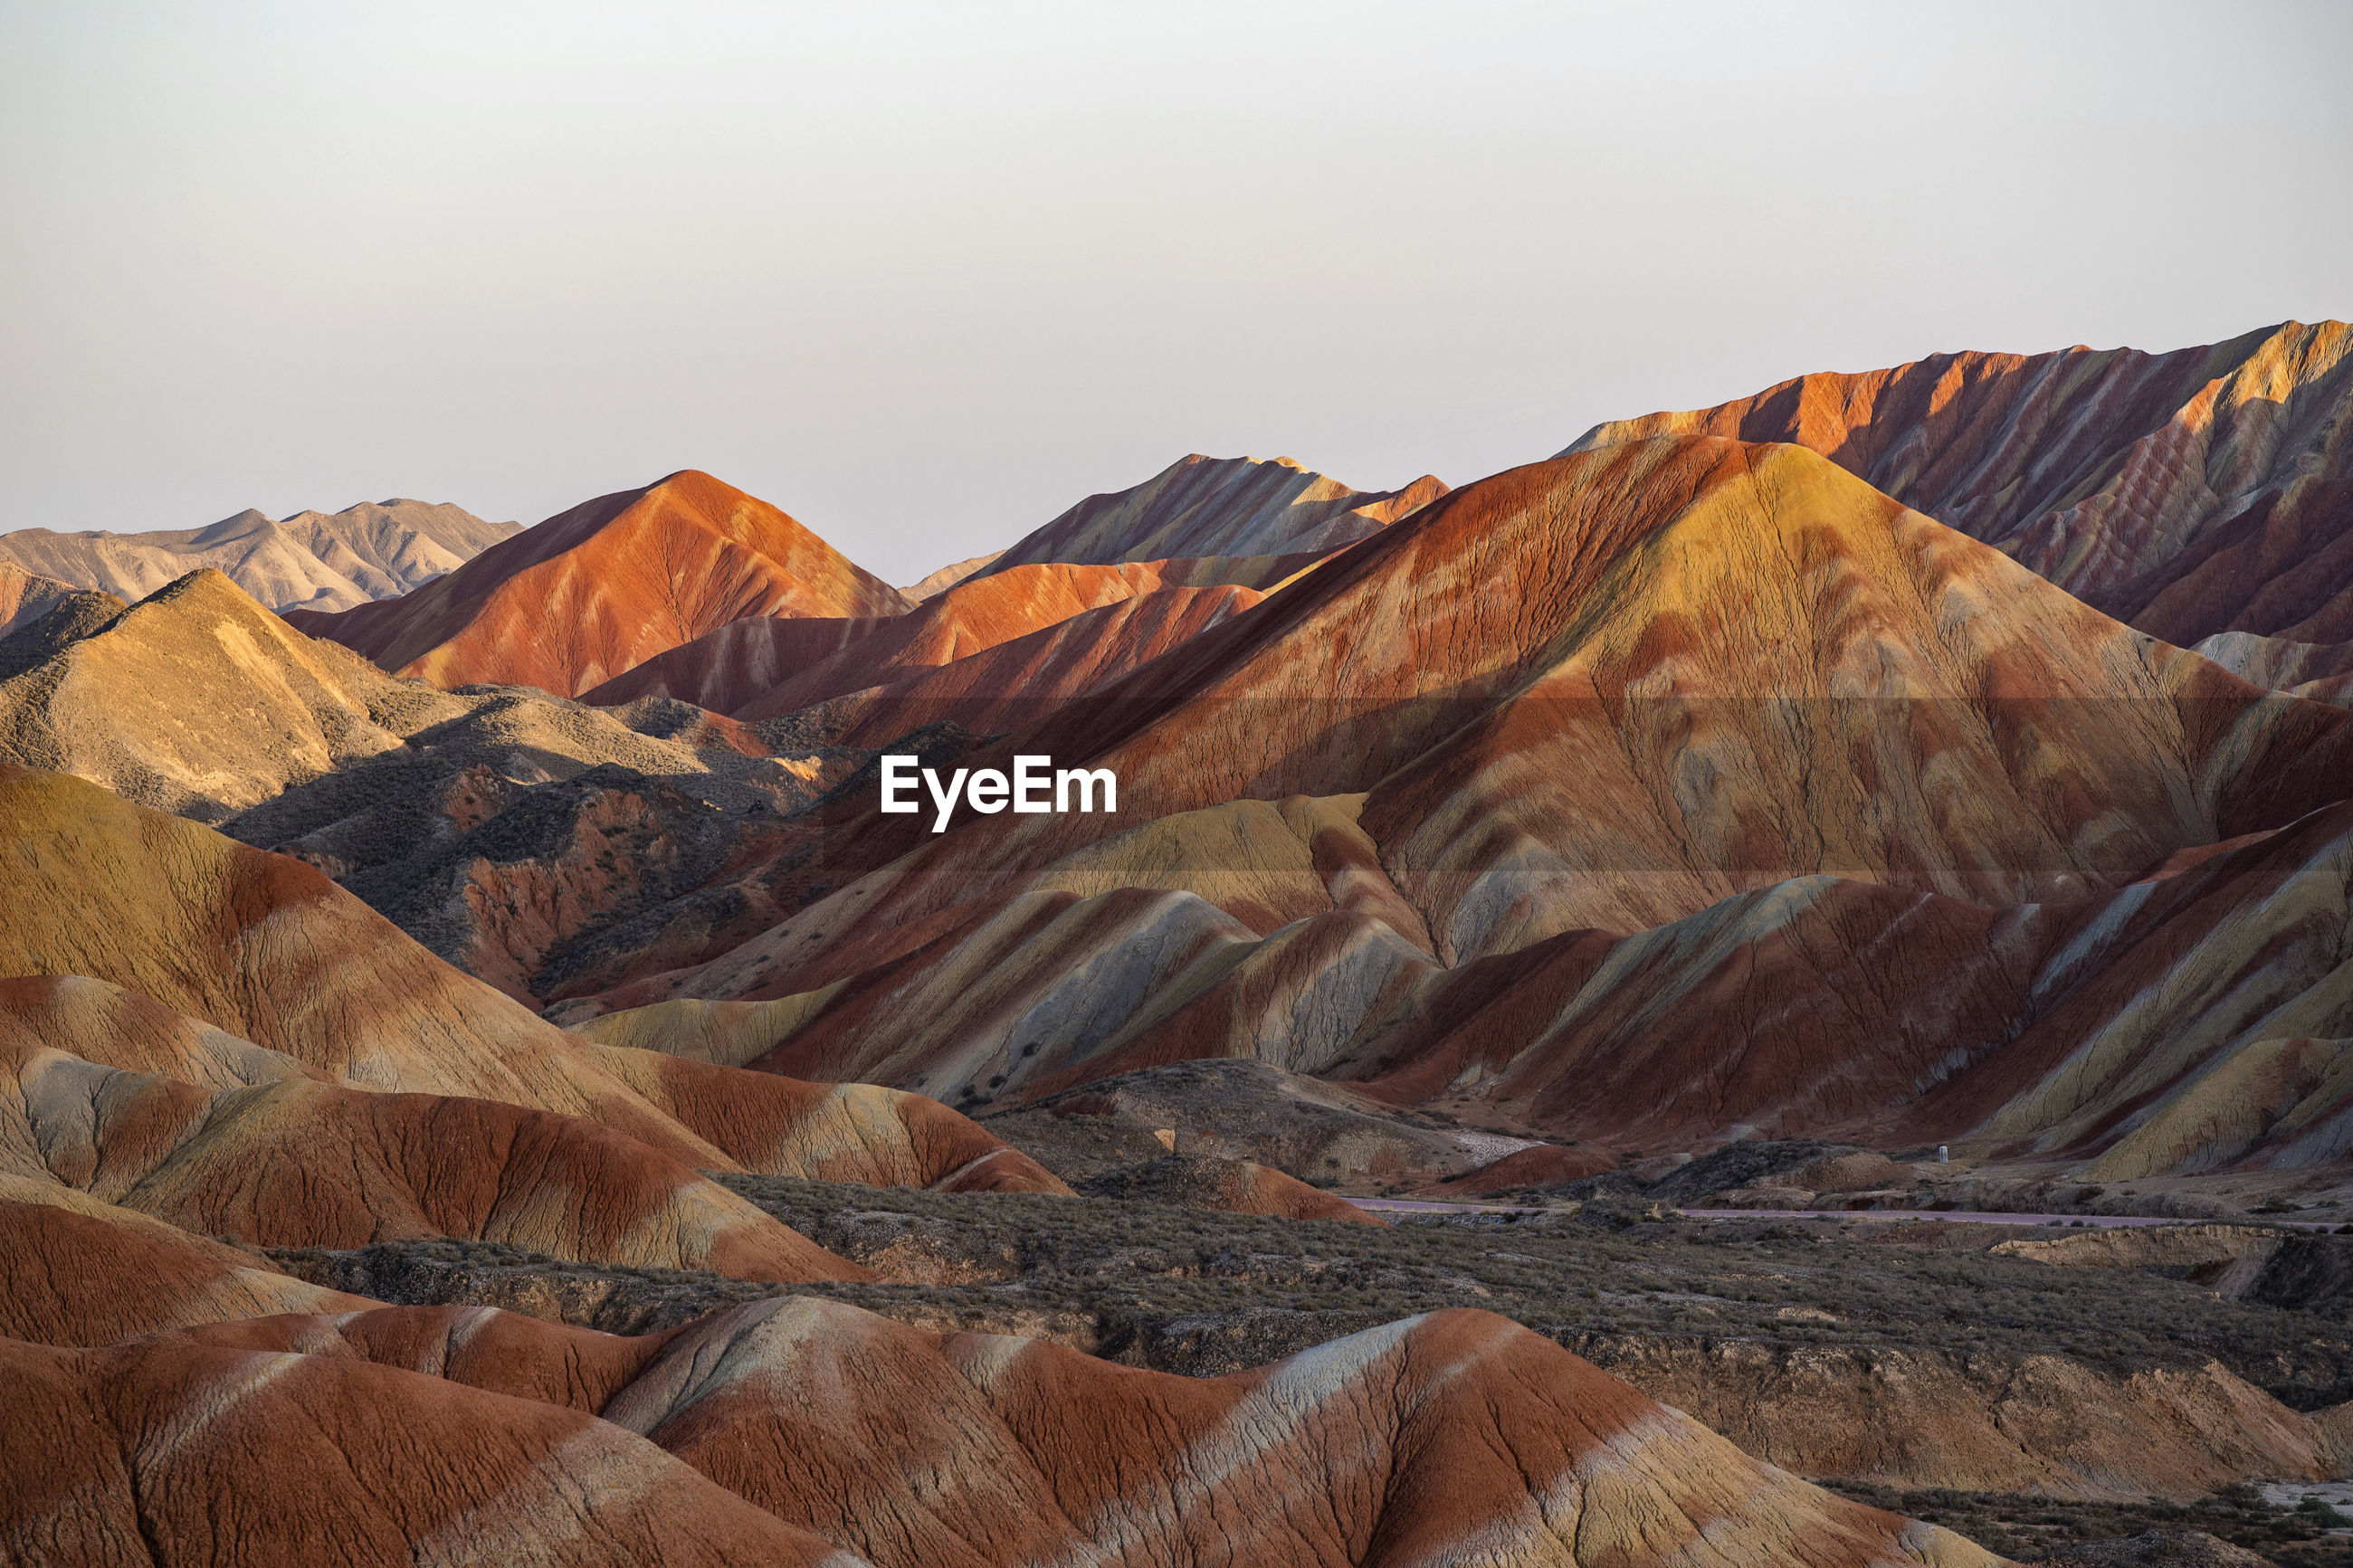 Colorful zhangye danxia national geopark or china's rainbow mountains during sunset, gansu, china